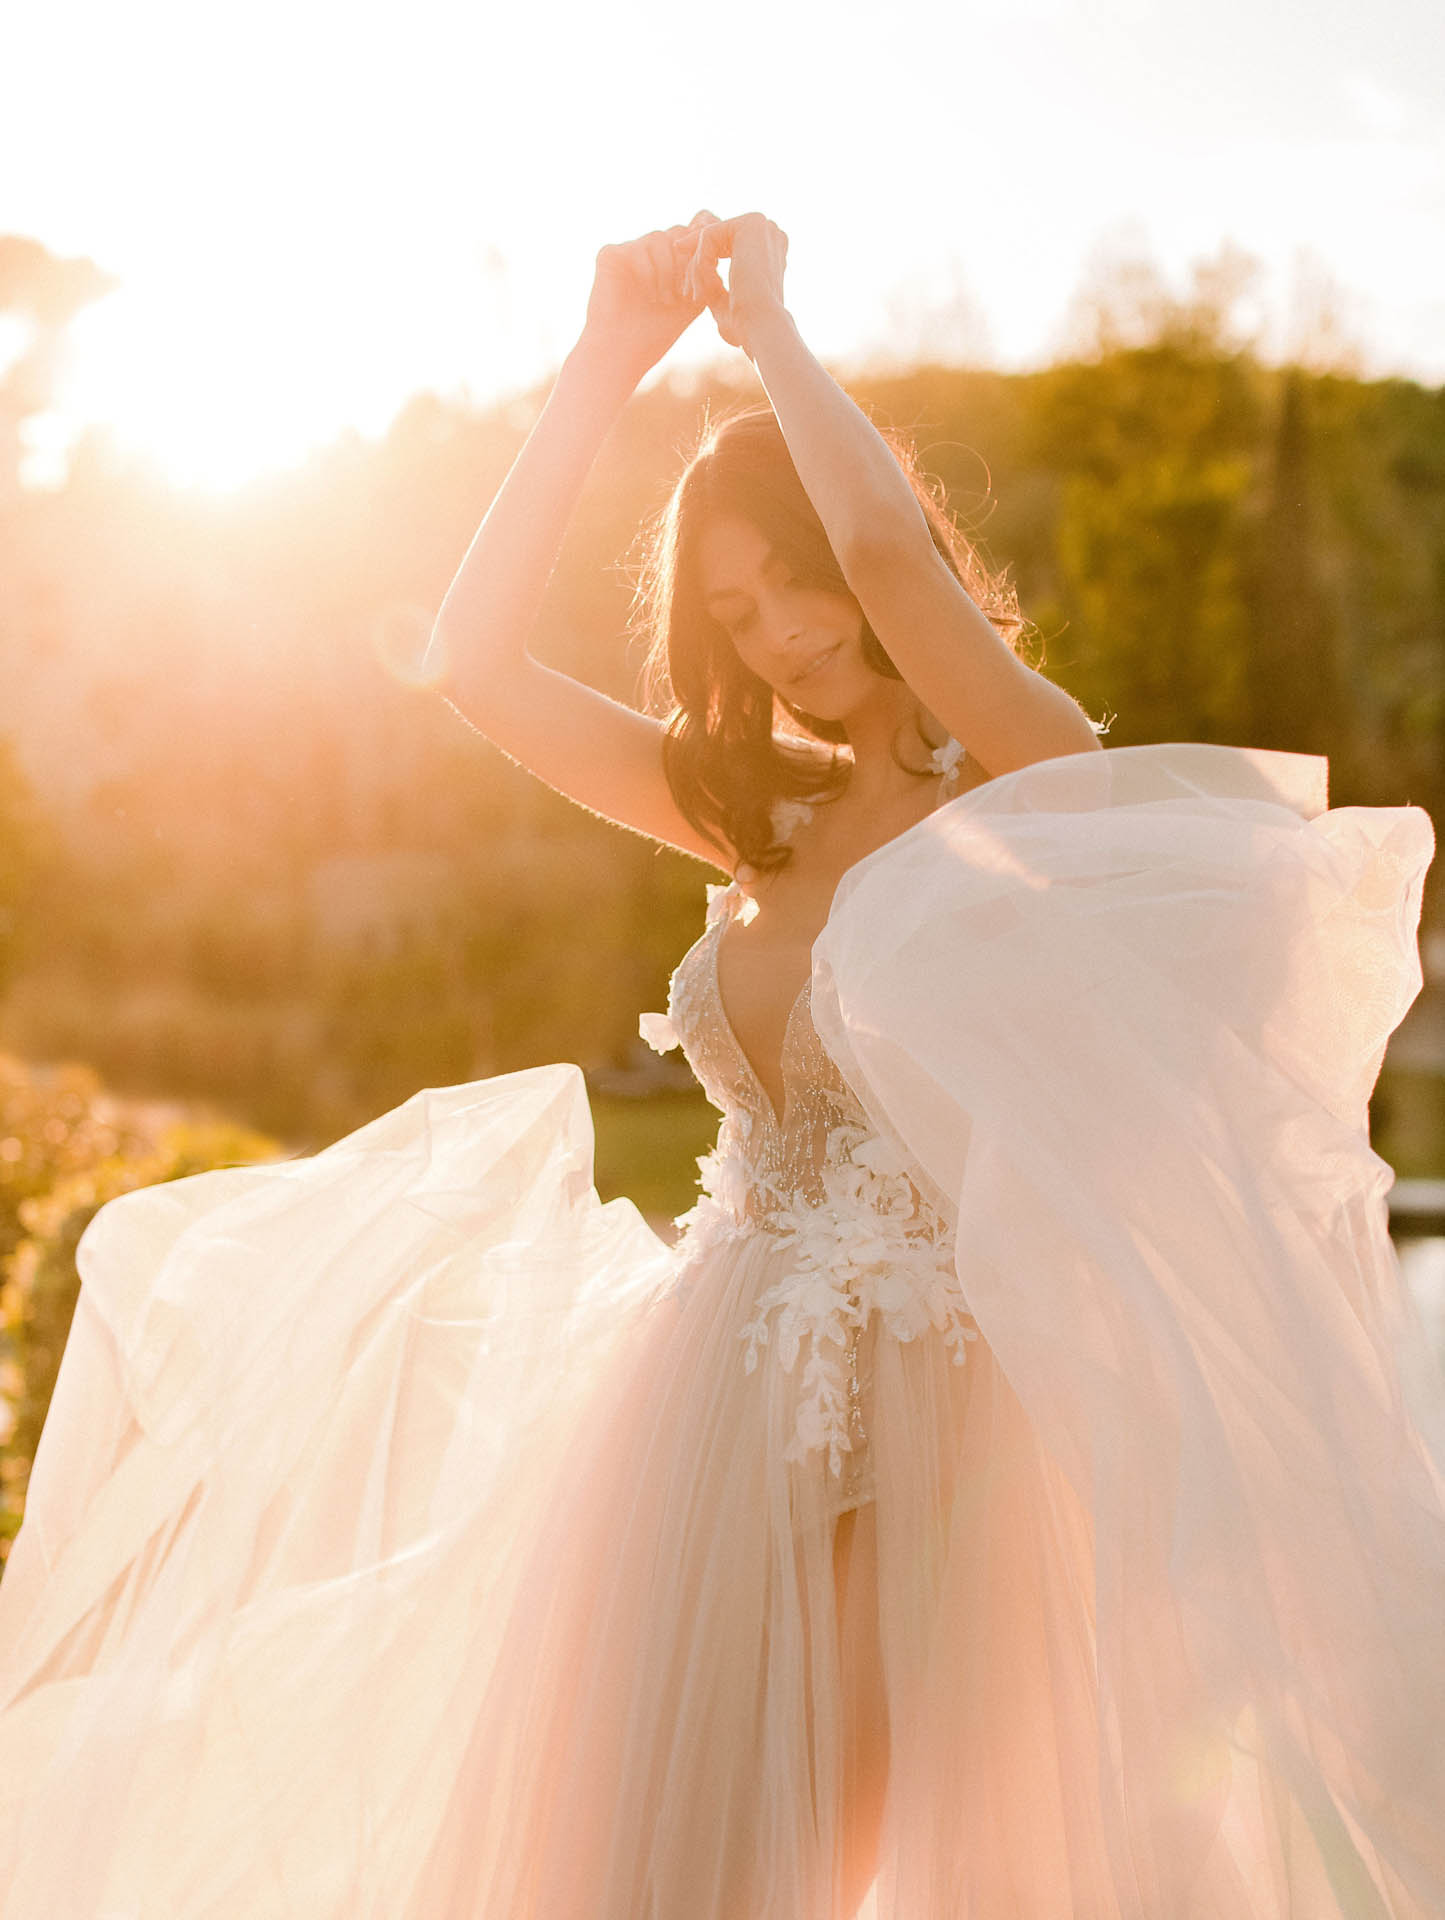 Find The Perfect Wedding Gown For Your Destination I Do's!